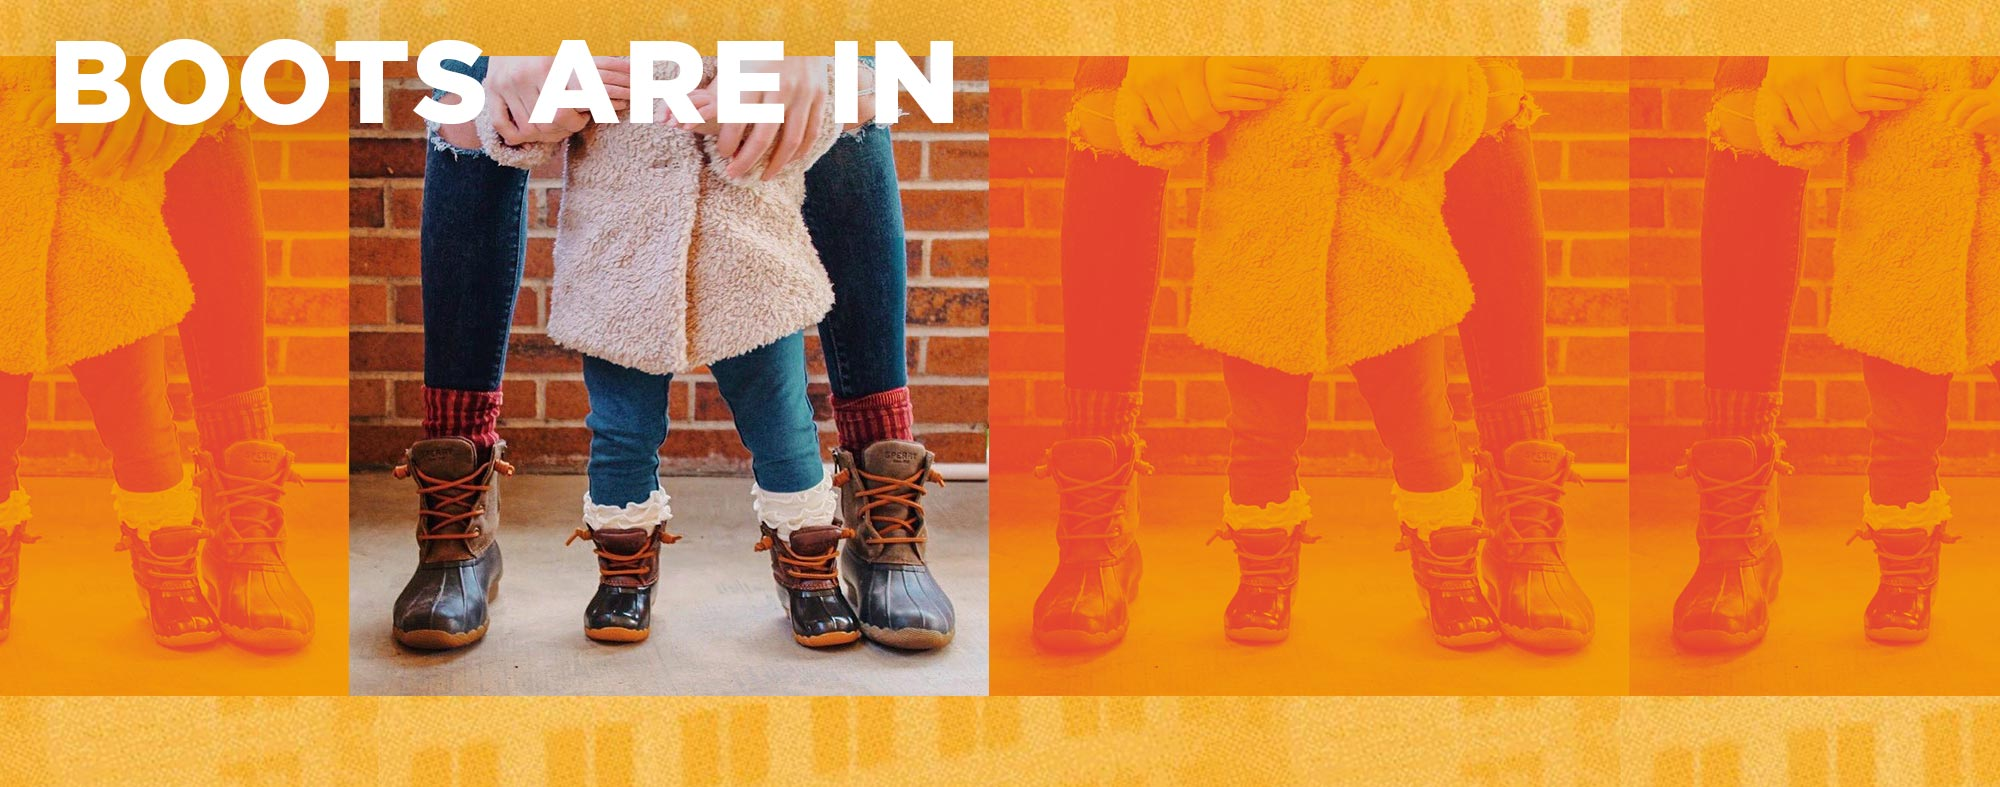 Shop boots from your favorite brands at Journeys Kidz